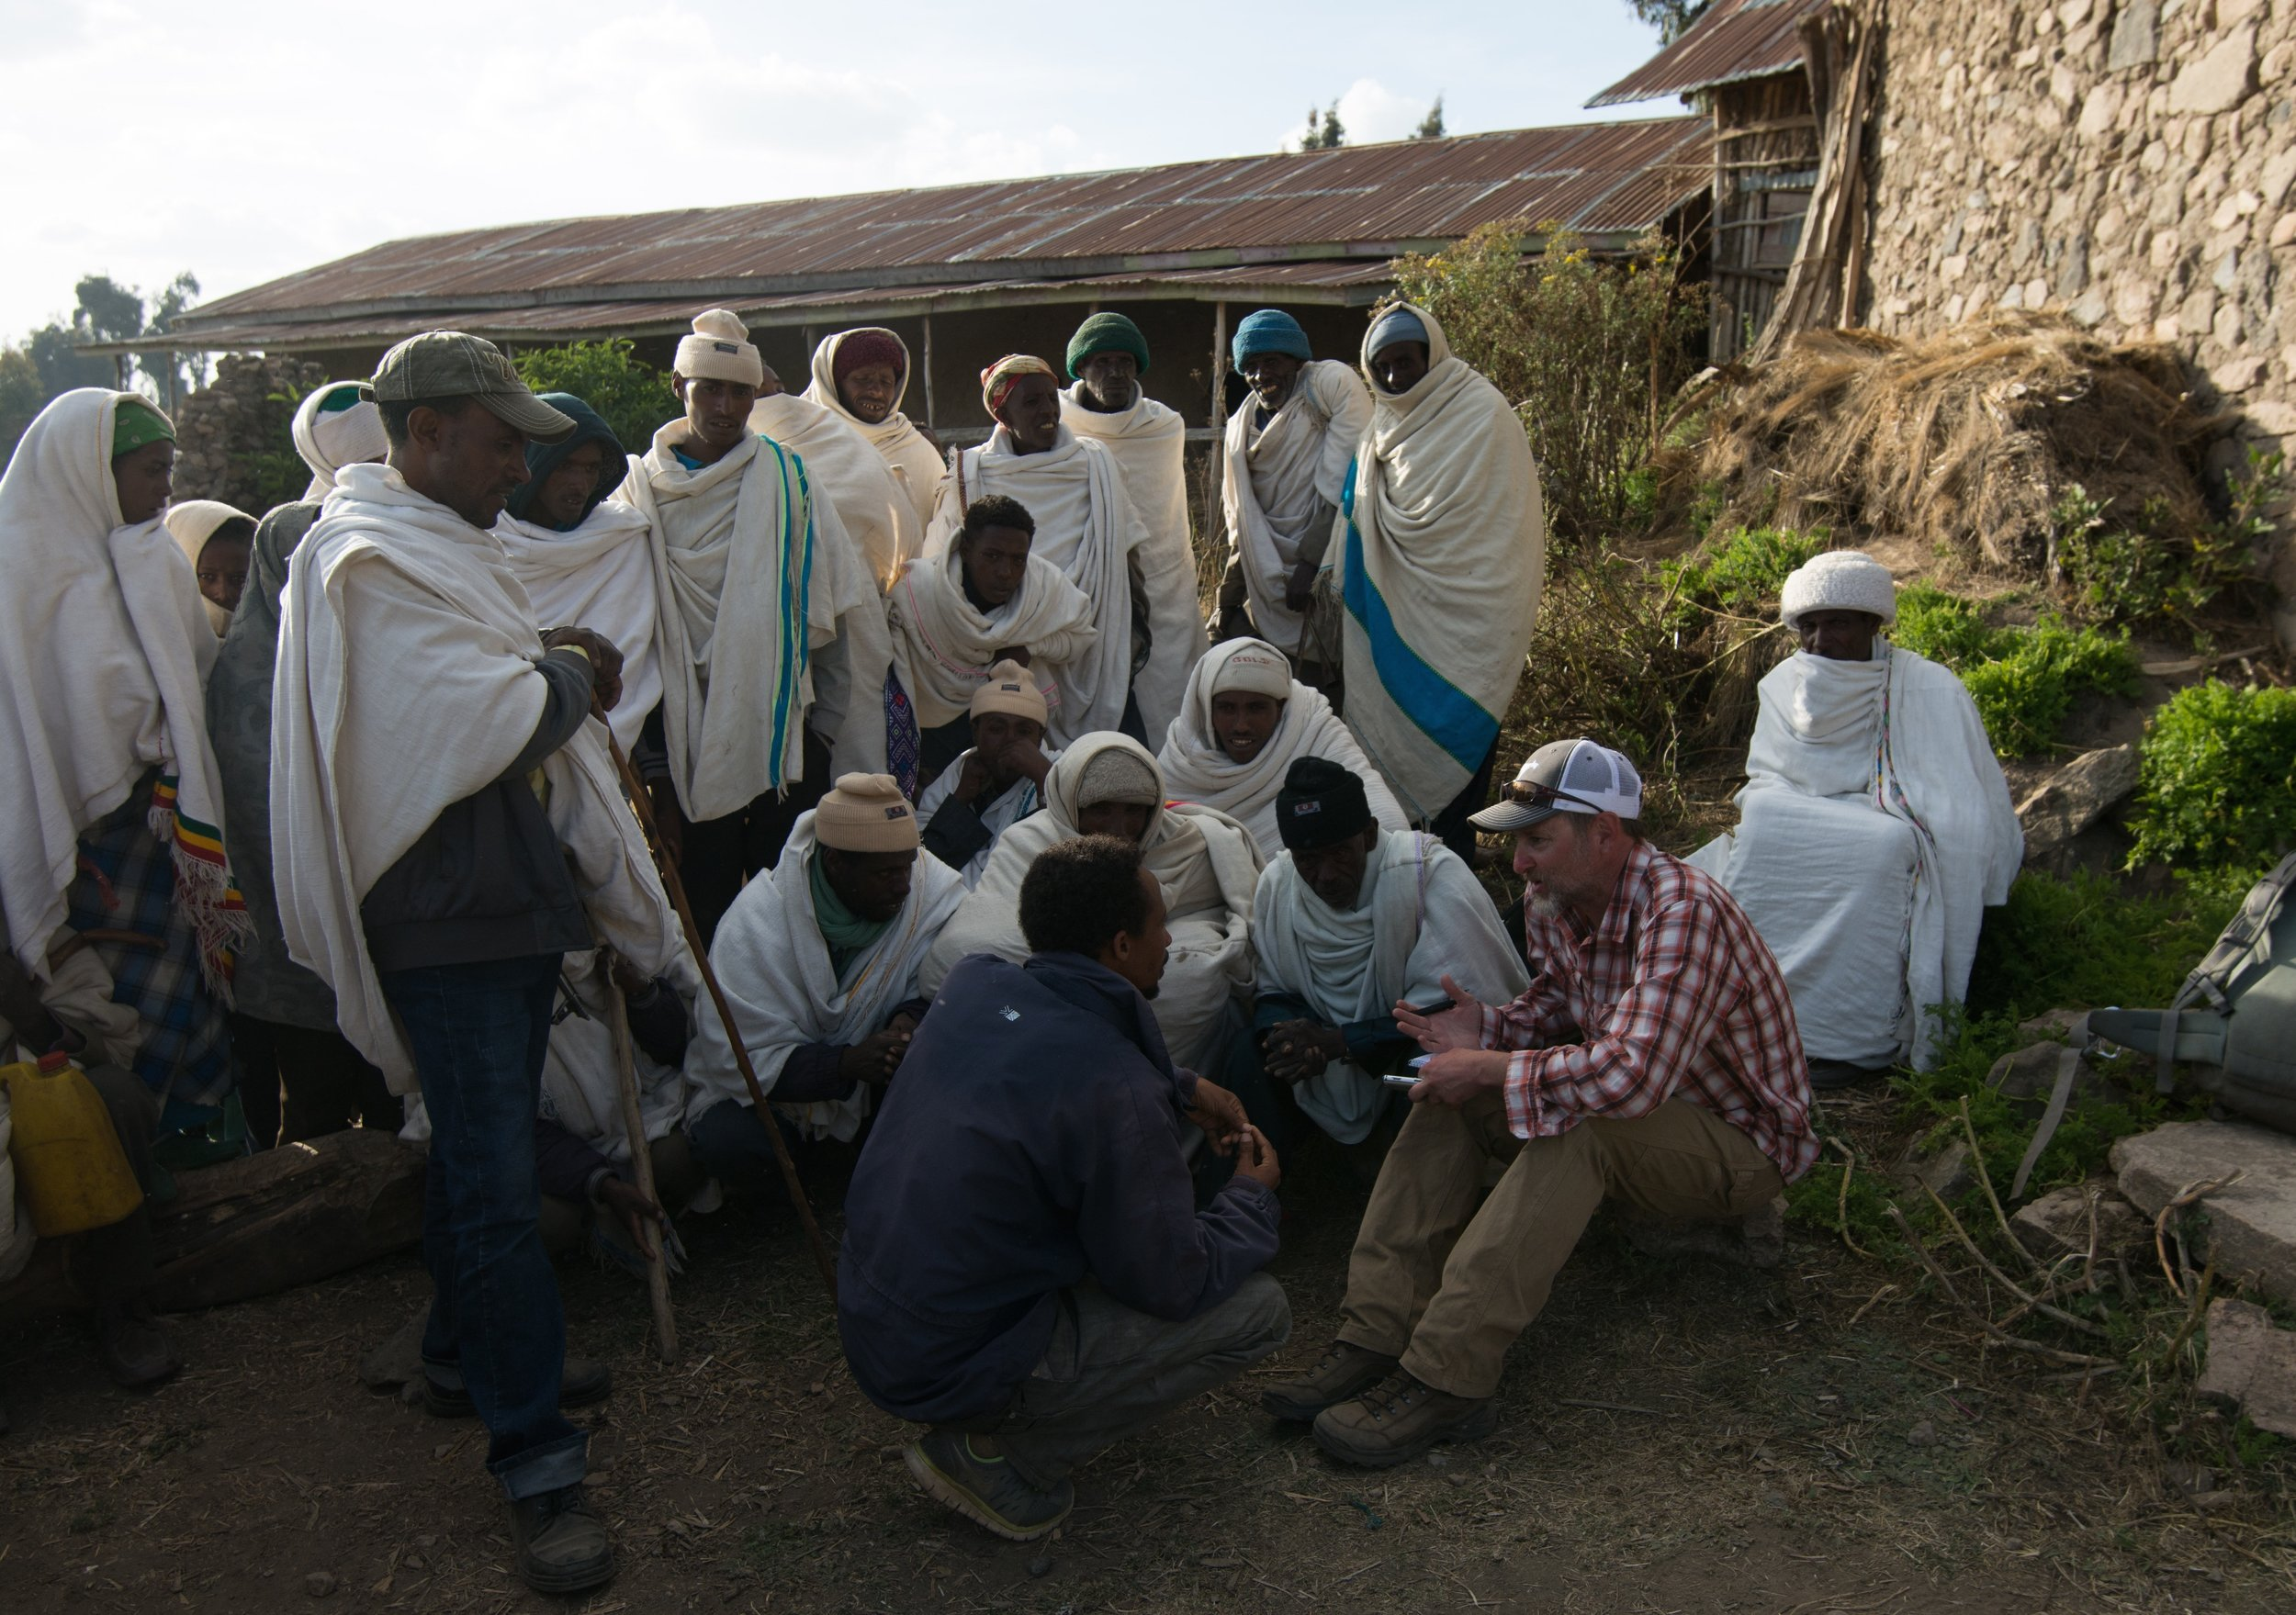 Christian villagers outside a church explain to Welch how they've managed to so thoroughly protect the rich grasslands in their community of 45,000 in the highlands of Ethiopia—a place where most meadows, thickets, moors and swamps are in steep decay. PHOTO CREDIT: Jeff Kerby